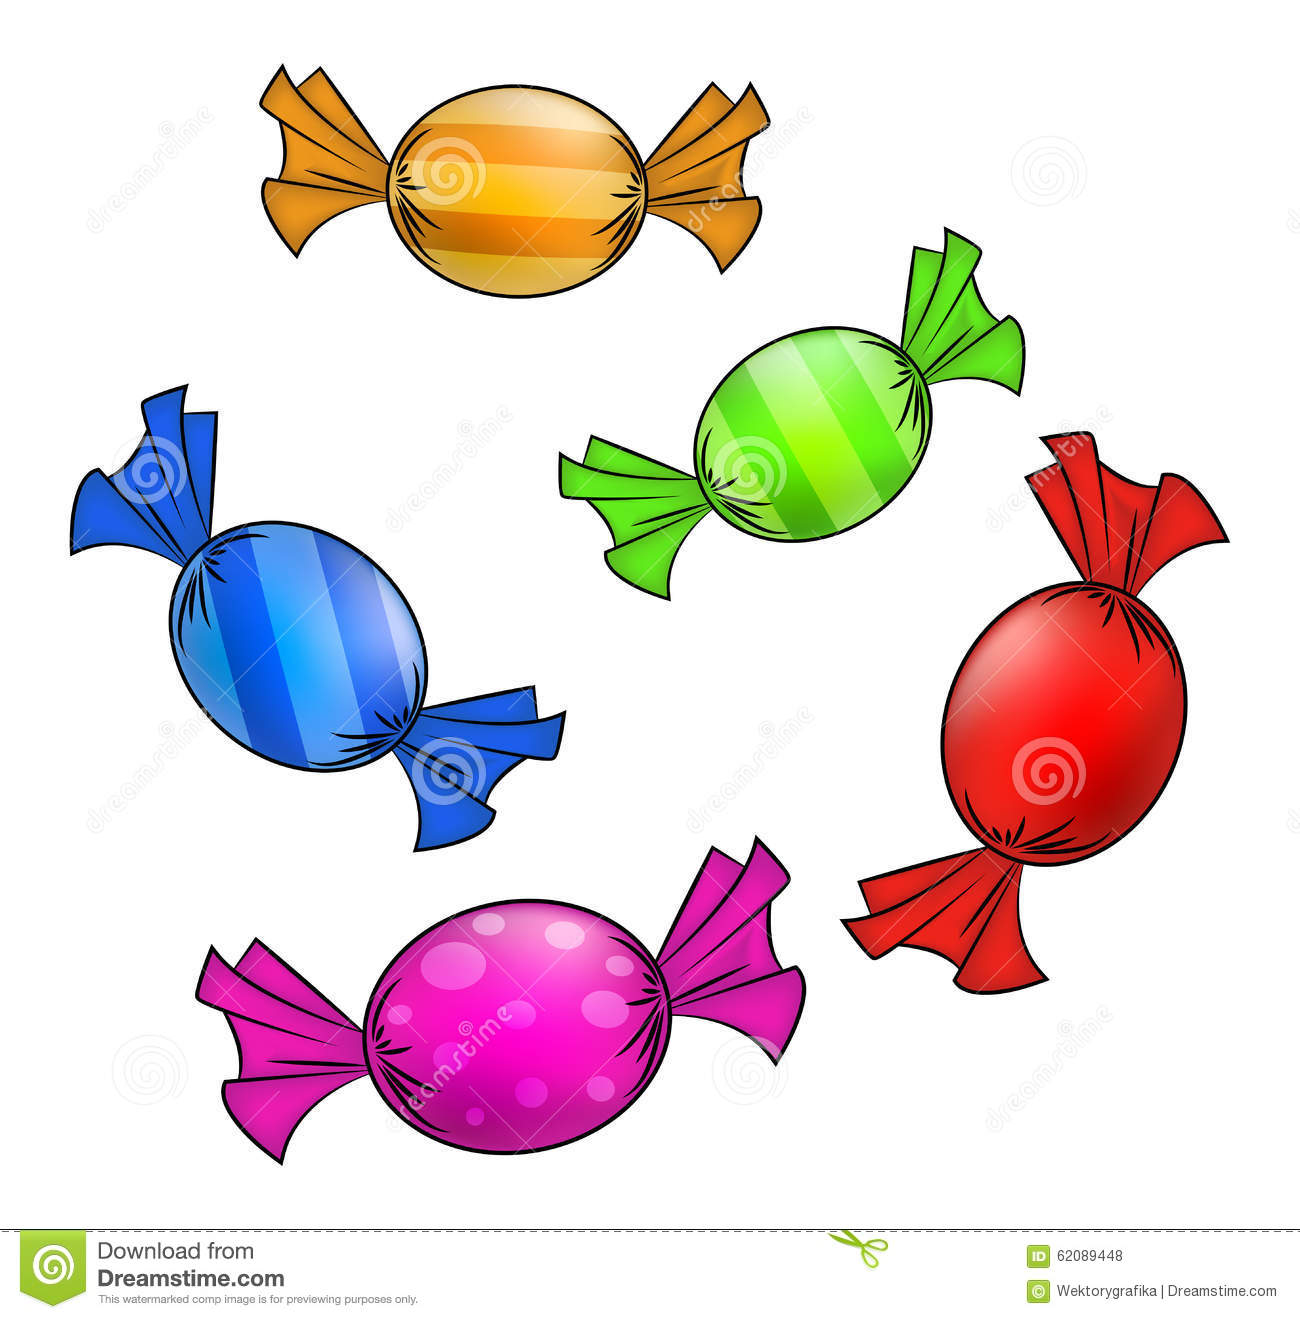 Garland wrapped people clipart.